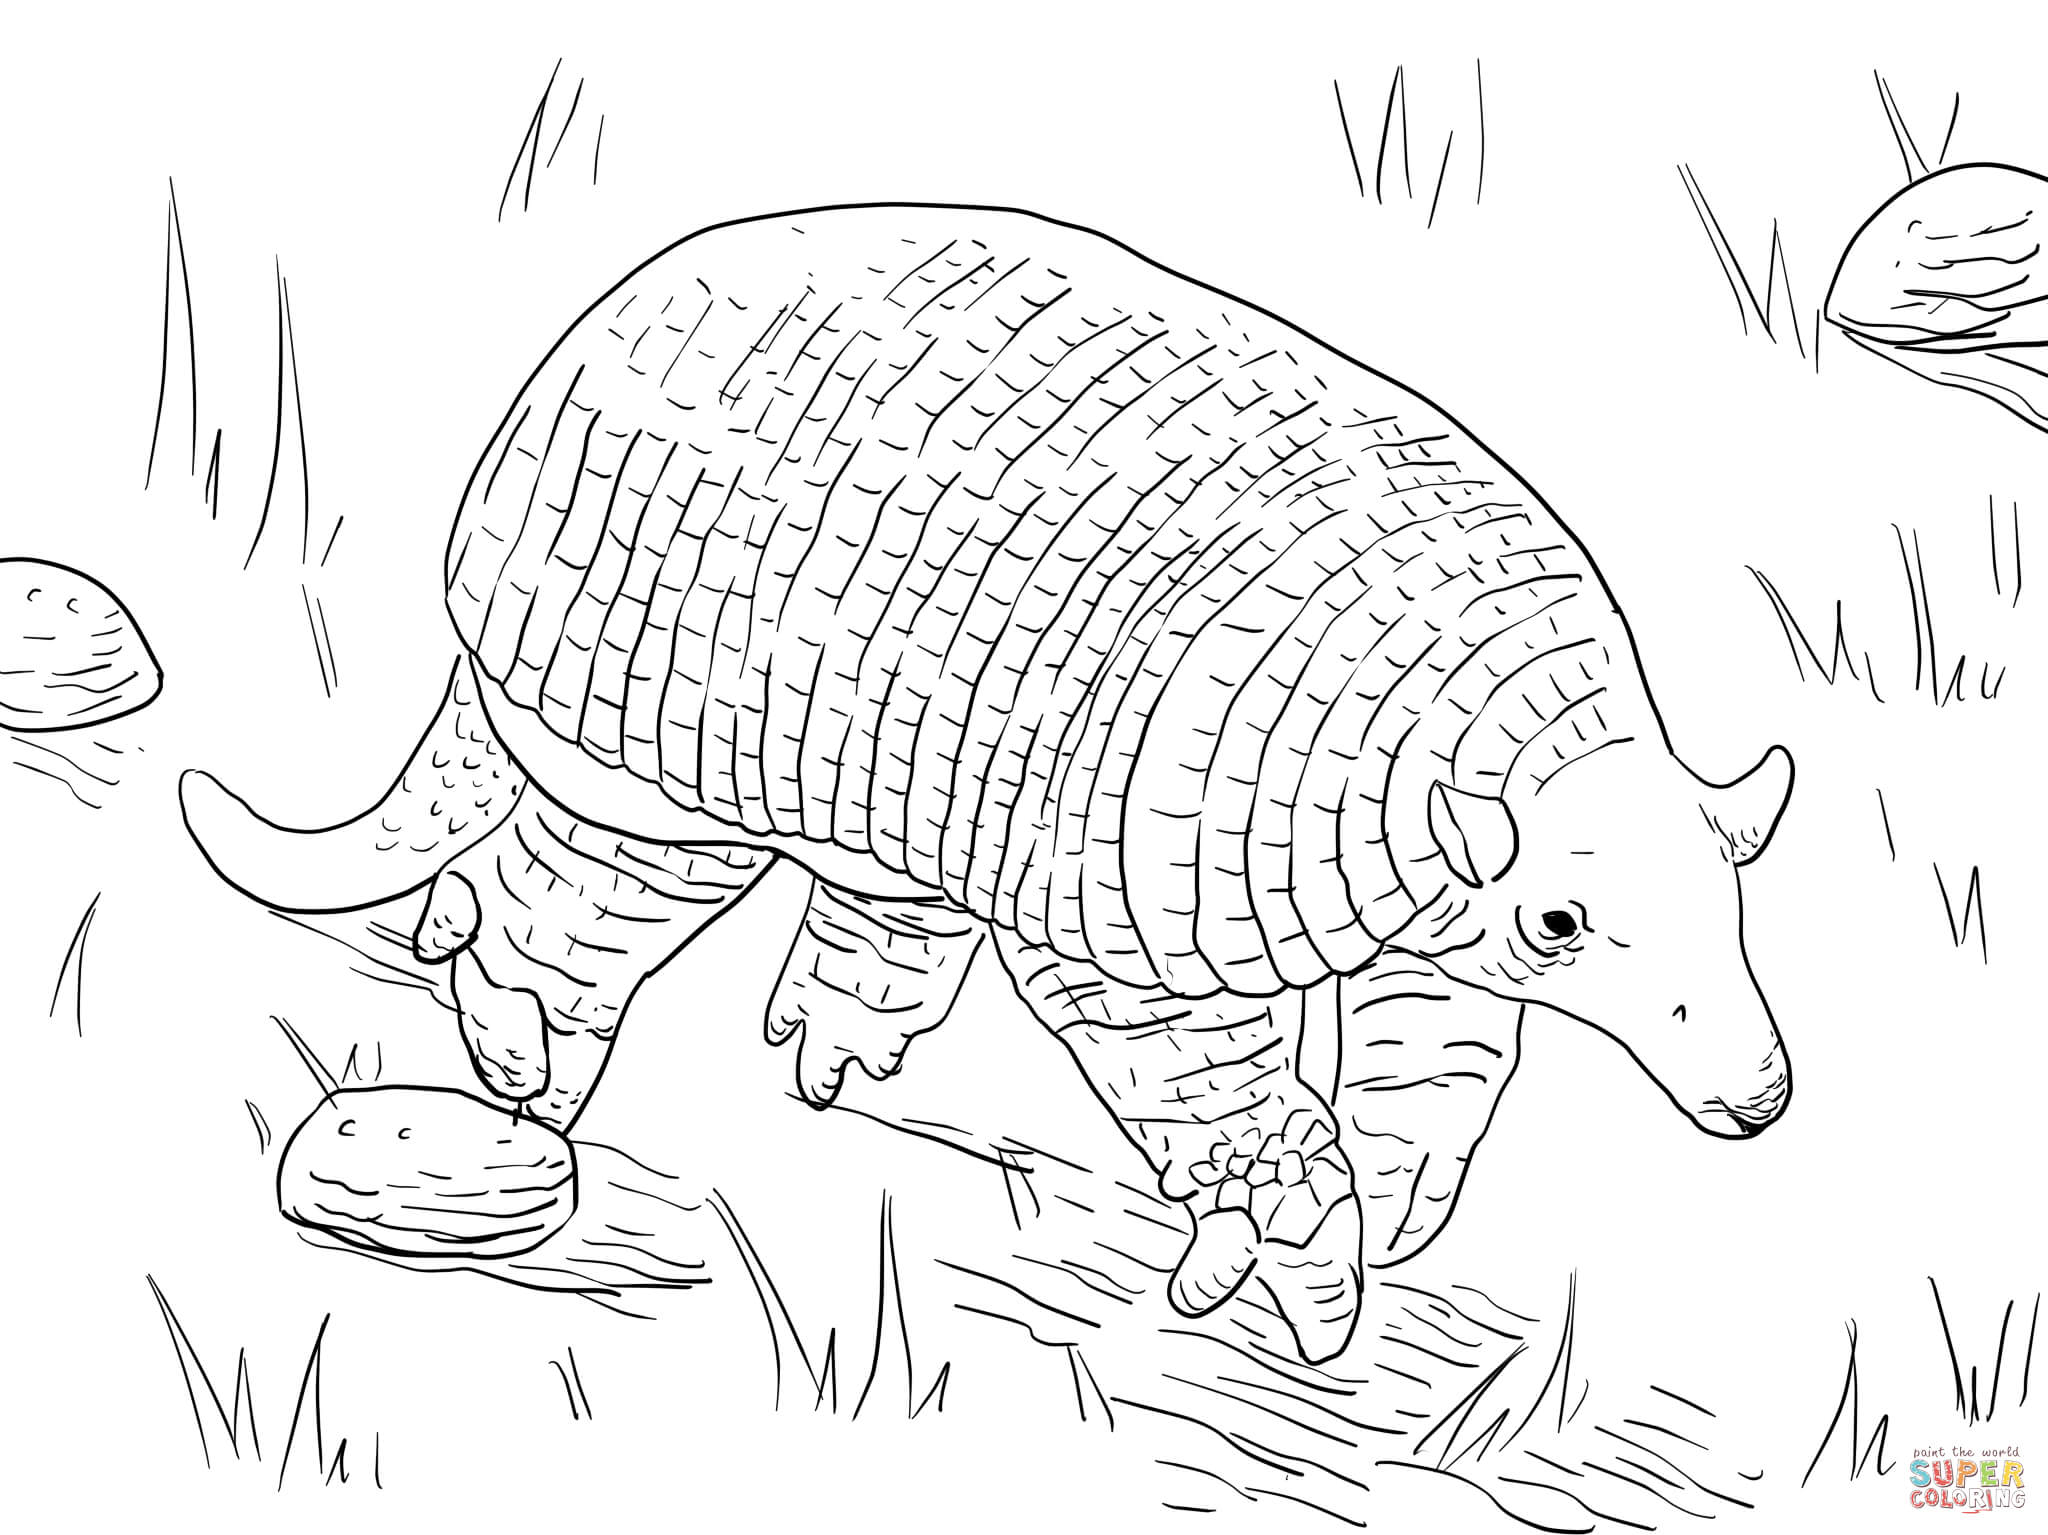 2048x1535 Giant Armadillo Coloring Page Free Printable Coloring Pages